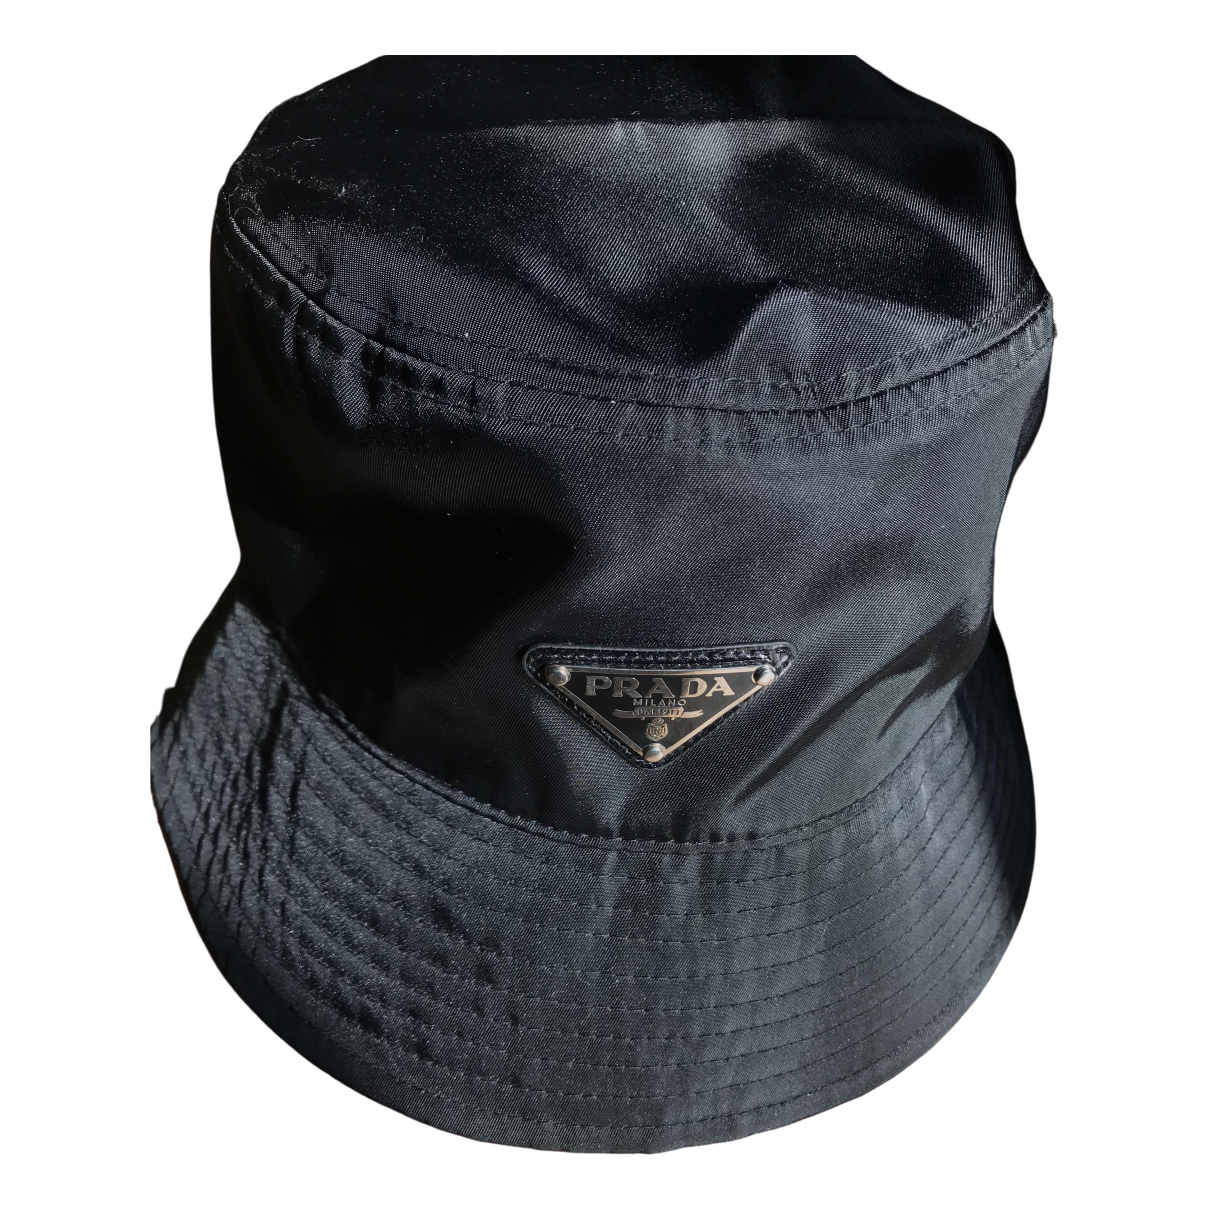 Prada \N Black Cloth hat for Women L International